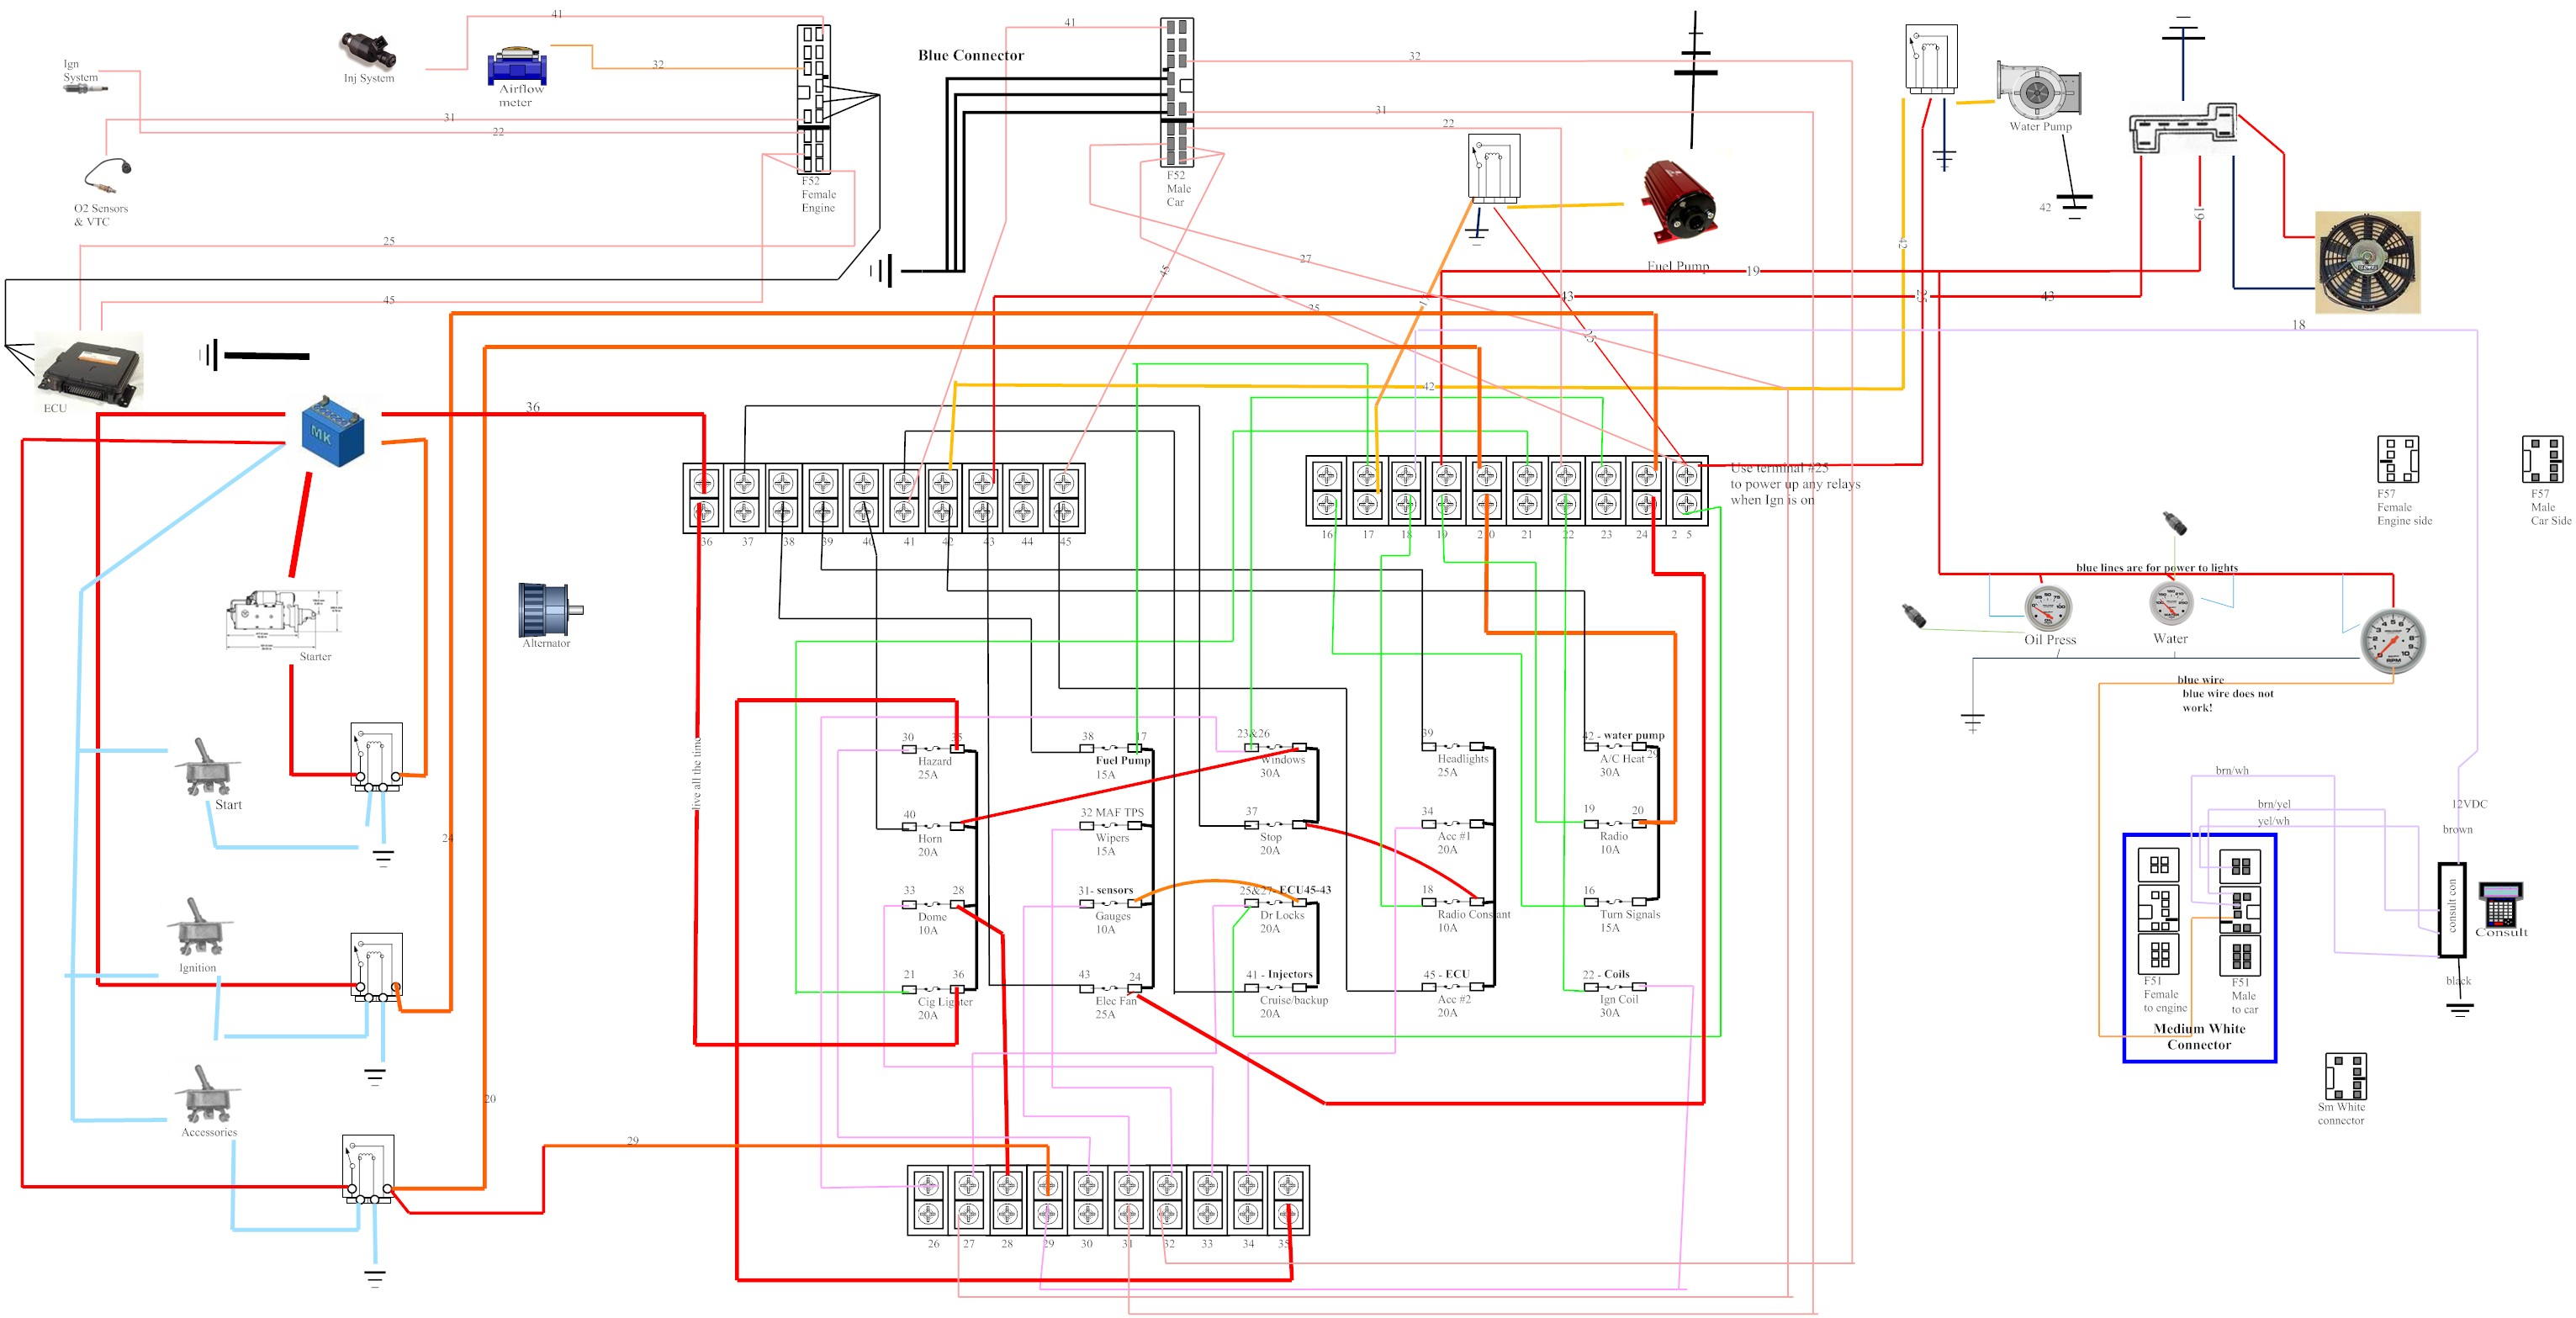 Sukup 220v Wiring Diagram Trusted Diagrams Yale Glc030 Electrical Corn Pro